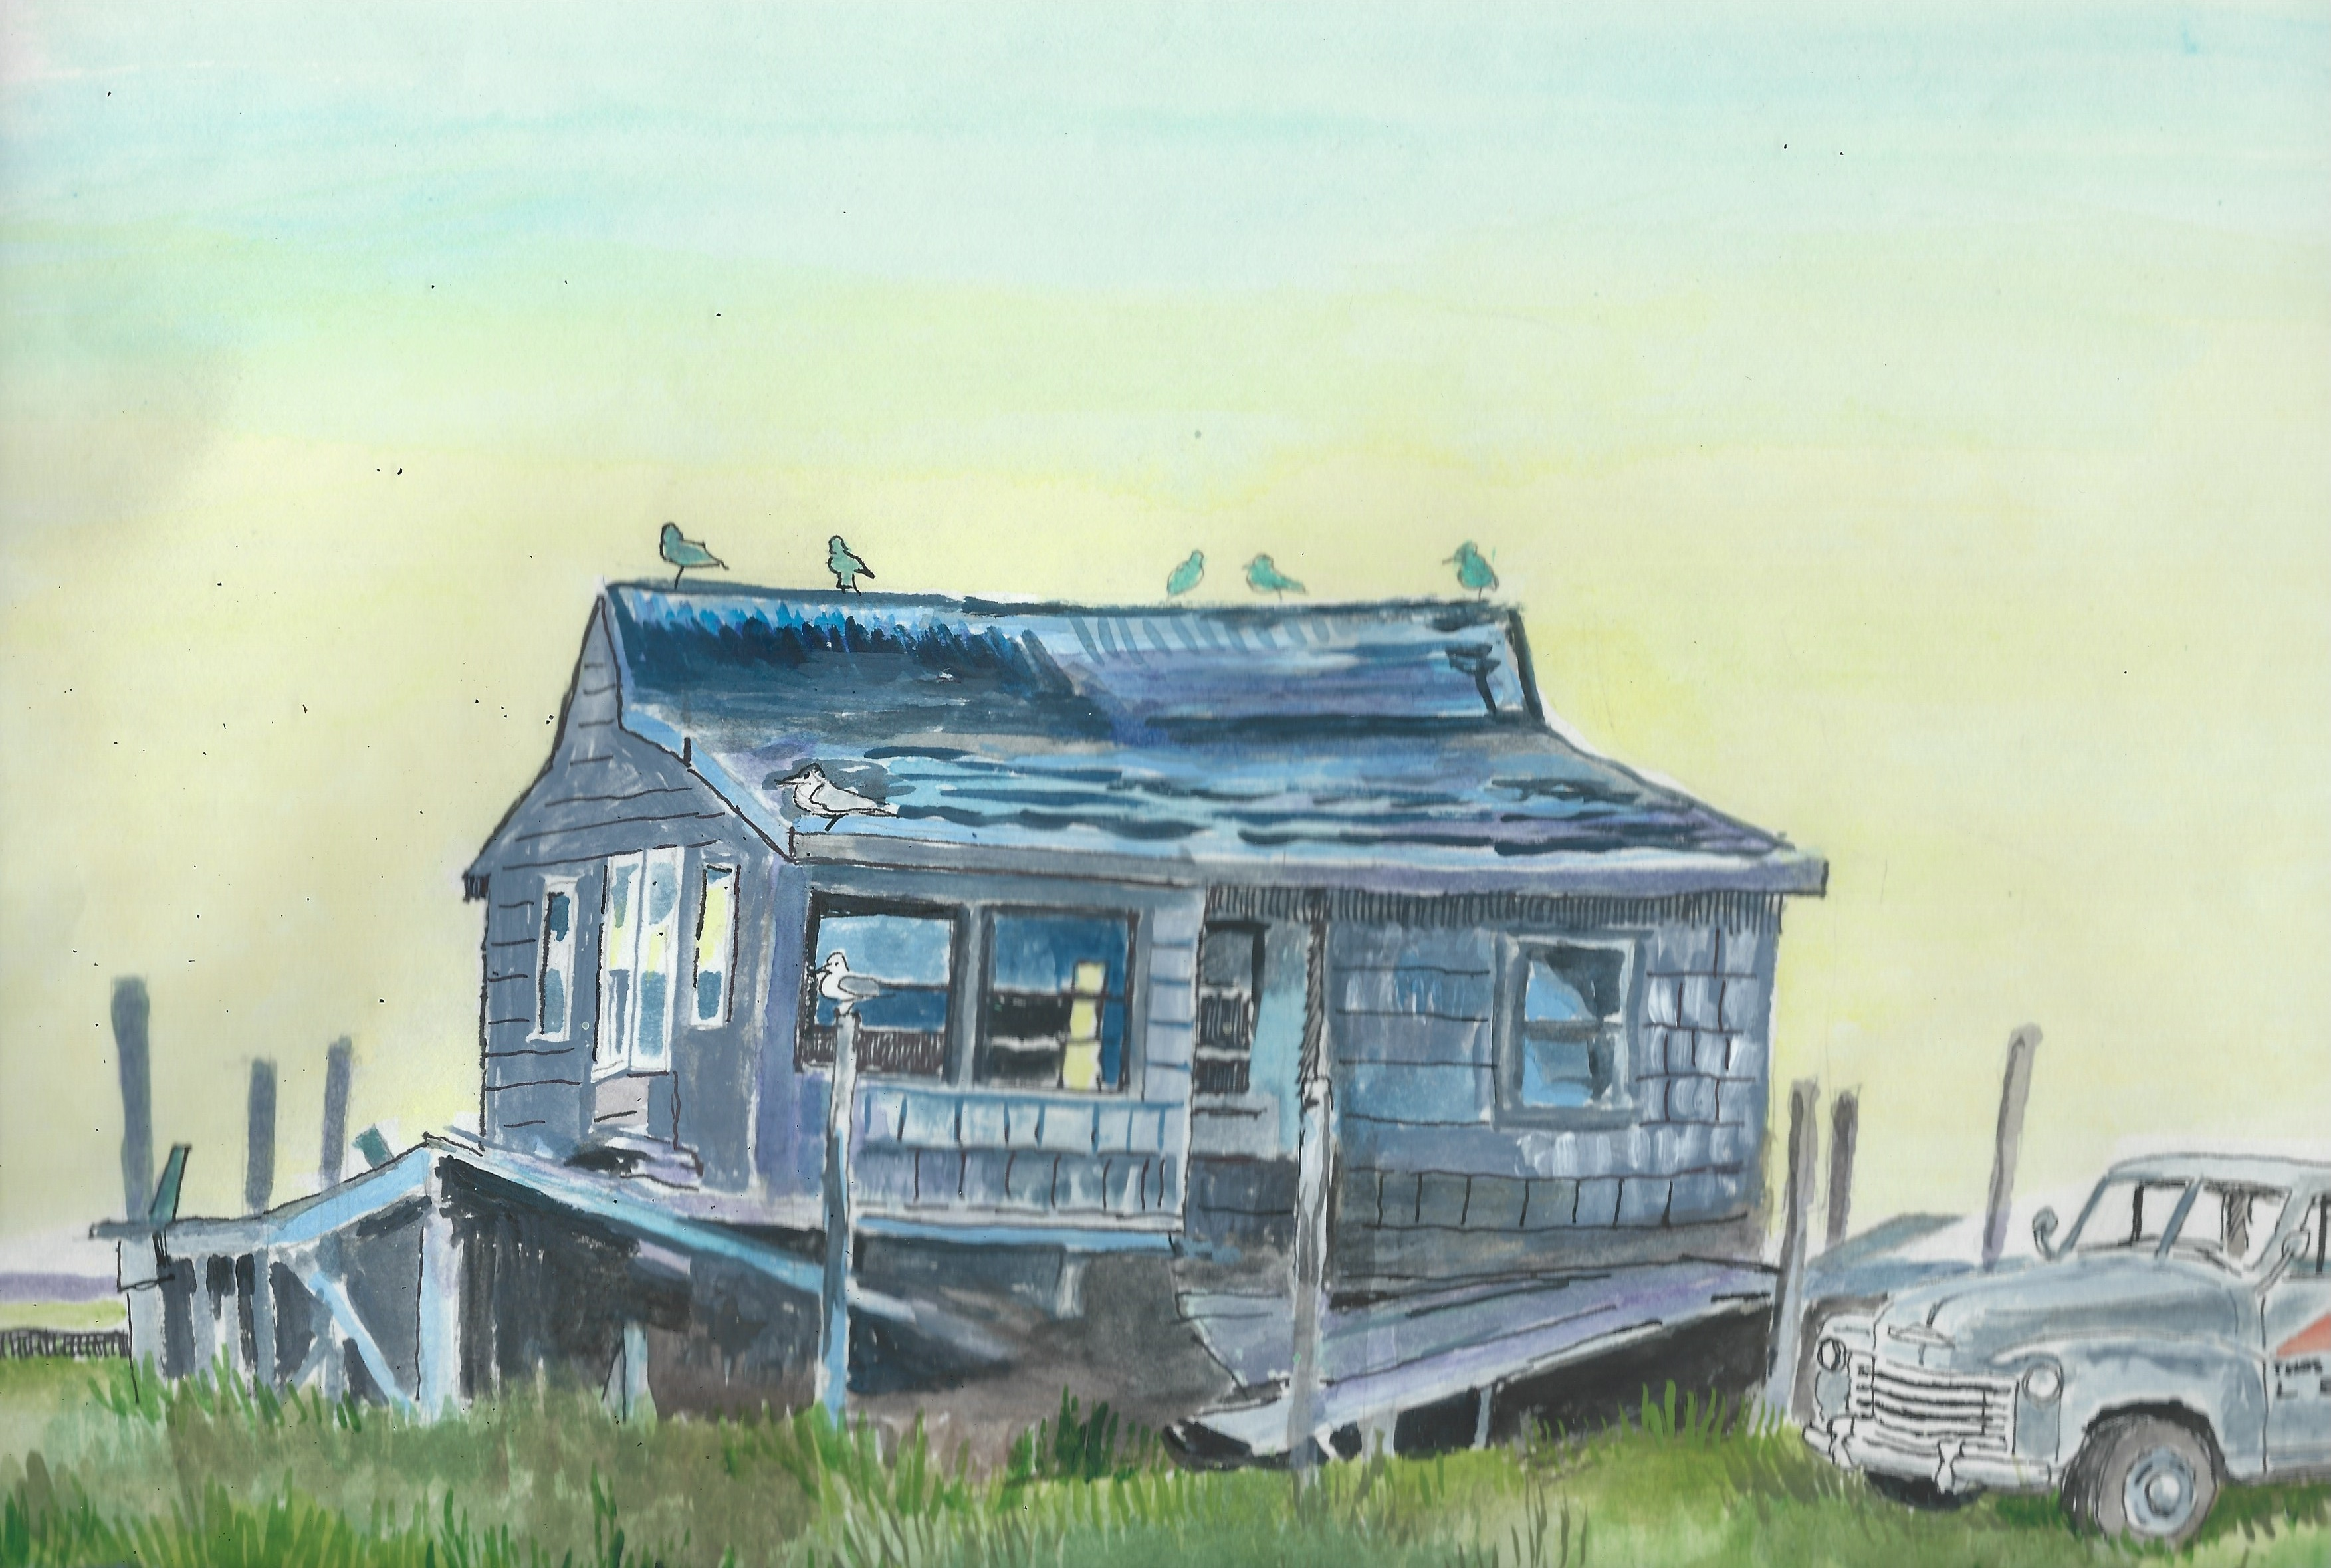 Partial Scan of Artist's Template/Watercolor of 'The Shack'